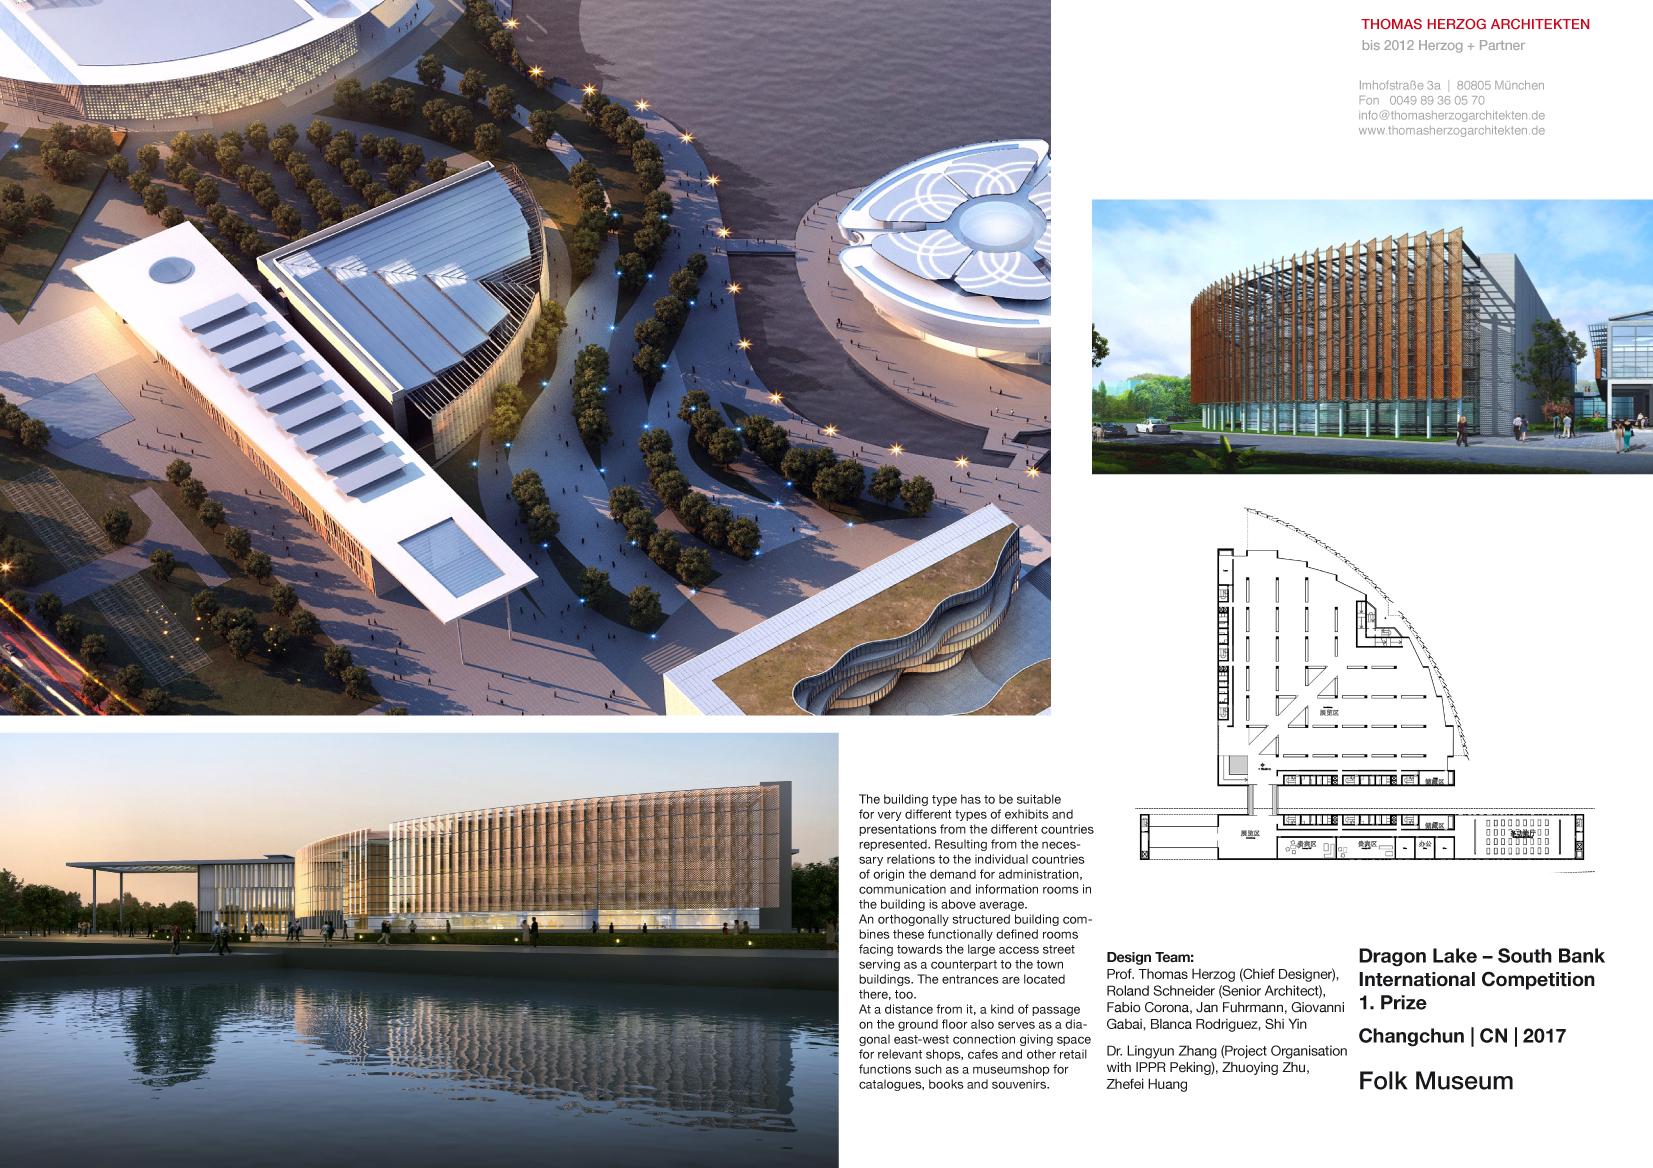 Folk Museum Dragon Lake South Bank Changchun CN 2017 International Competition 1.Prize